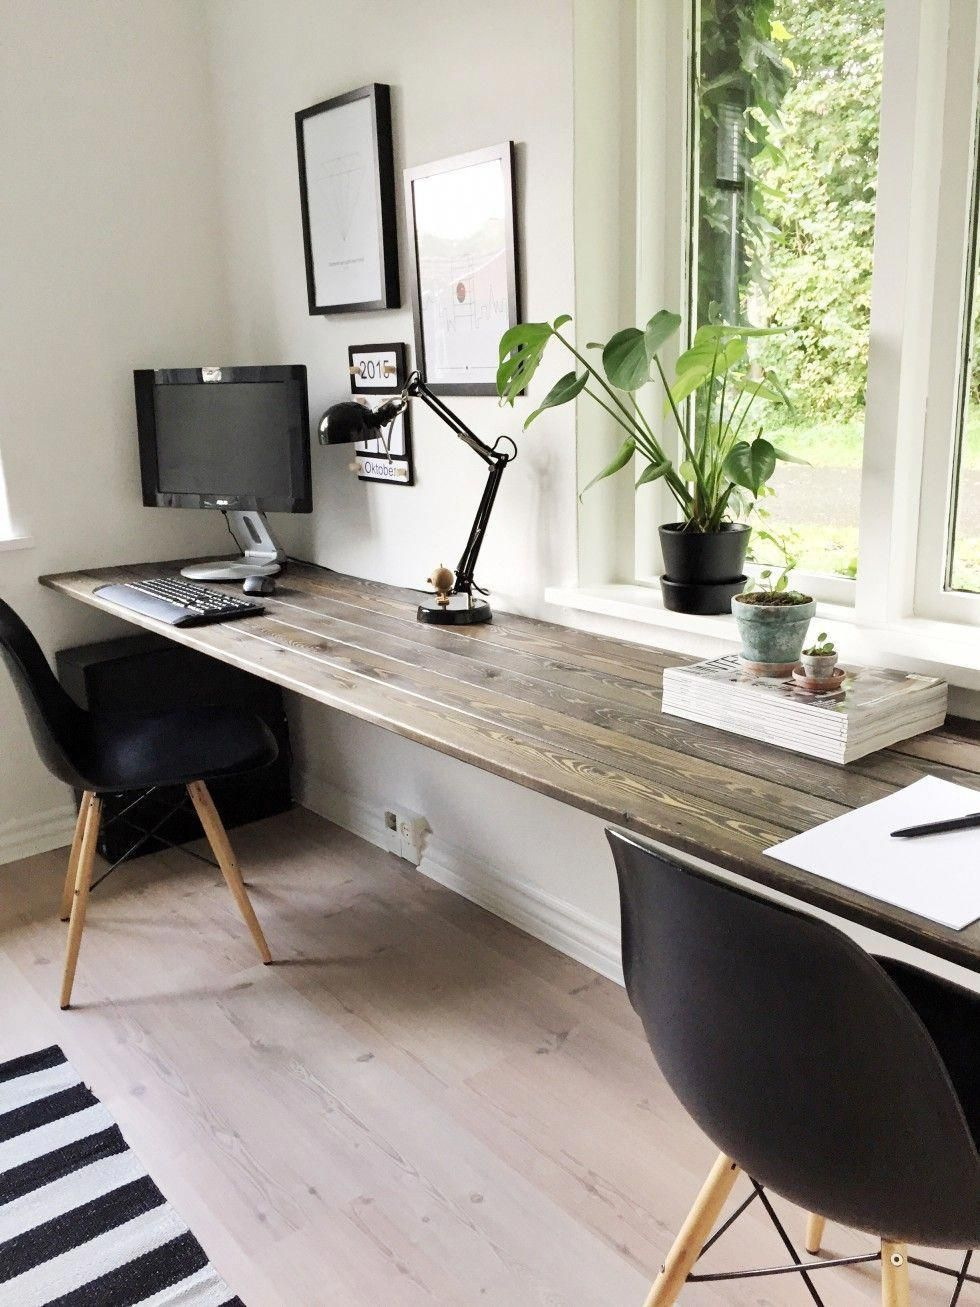 7 beautiful home desk ideas make comfortable for cozy on beautiful home desk organization ideas make comfortable what it will do for you id=79113